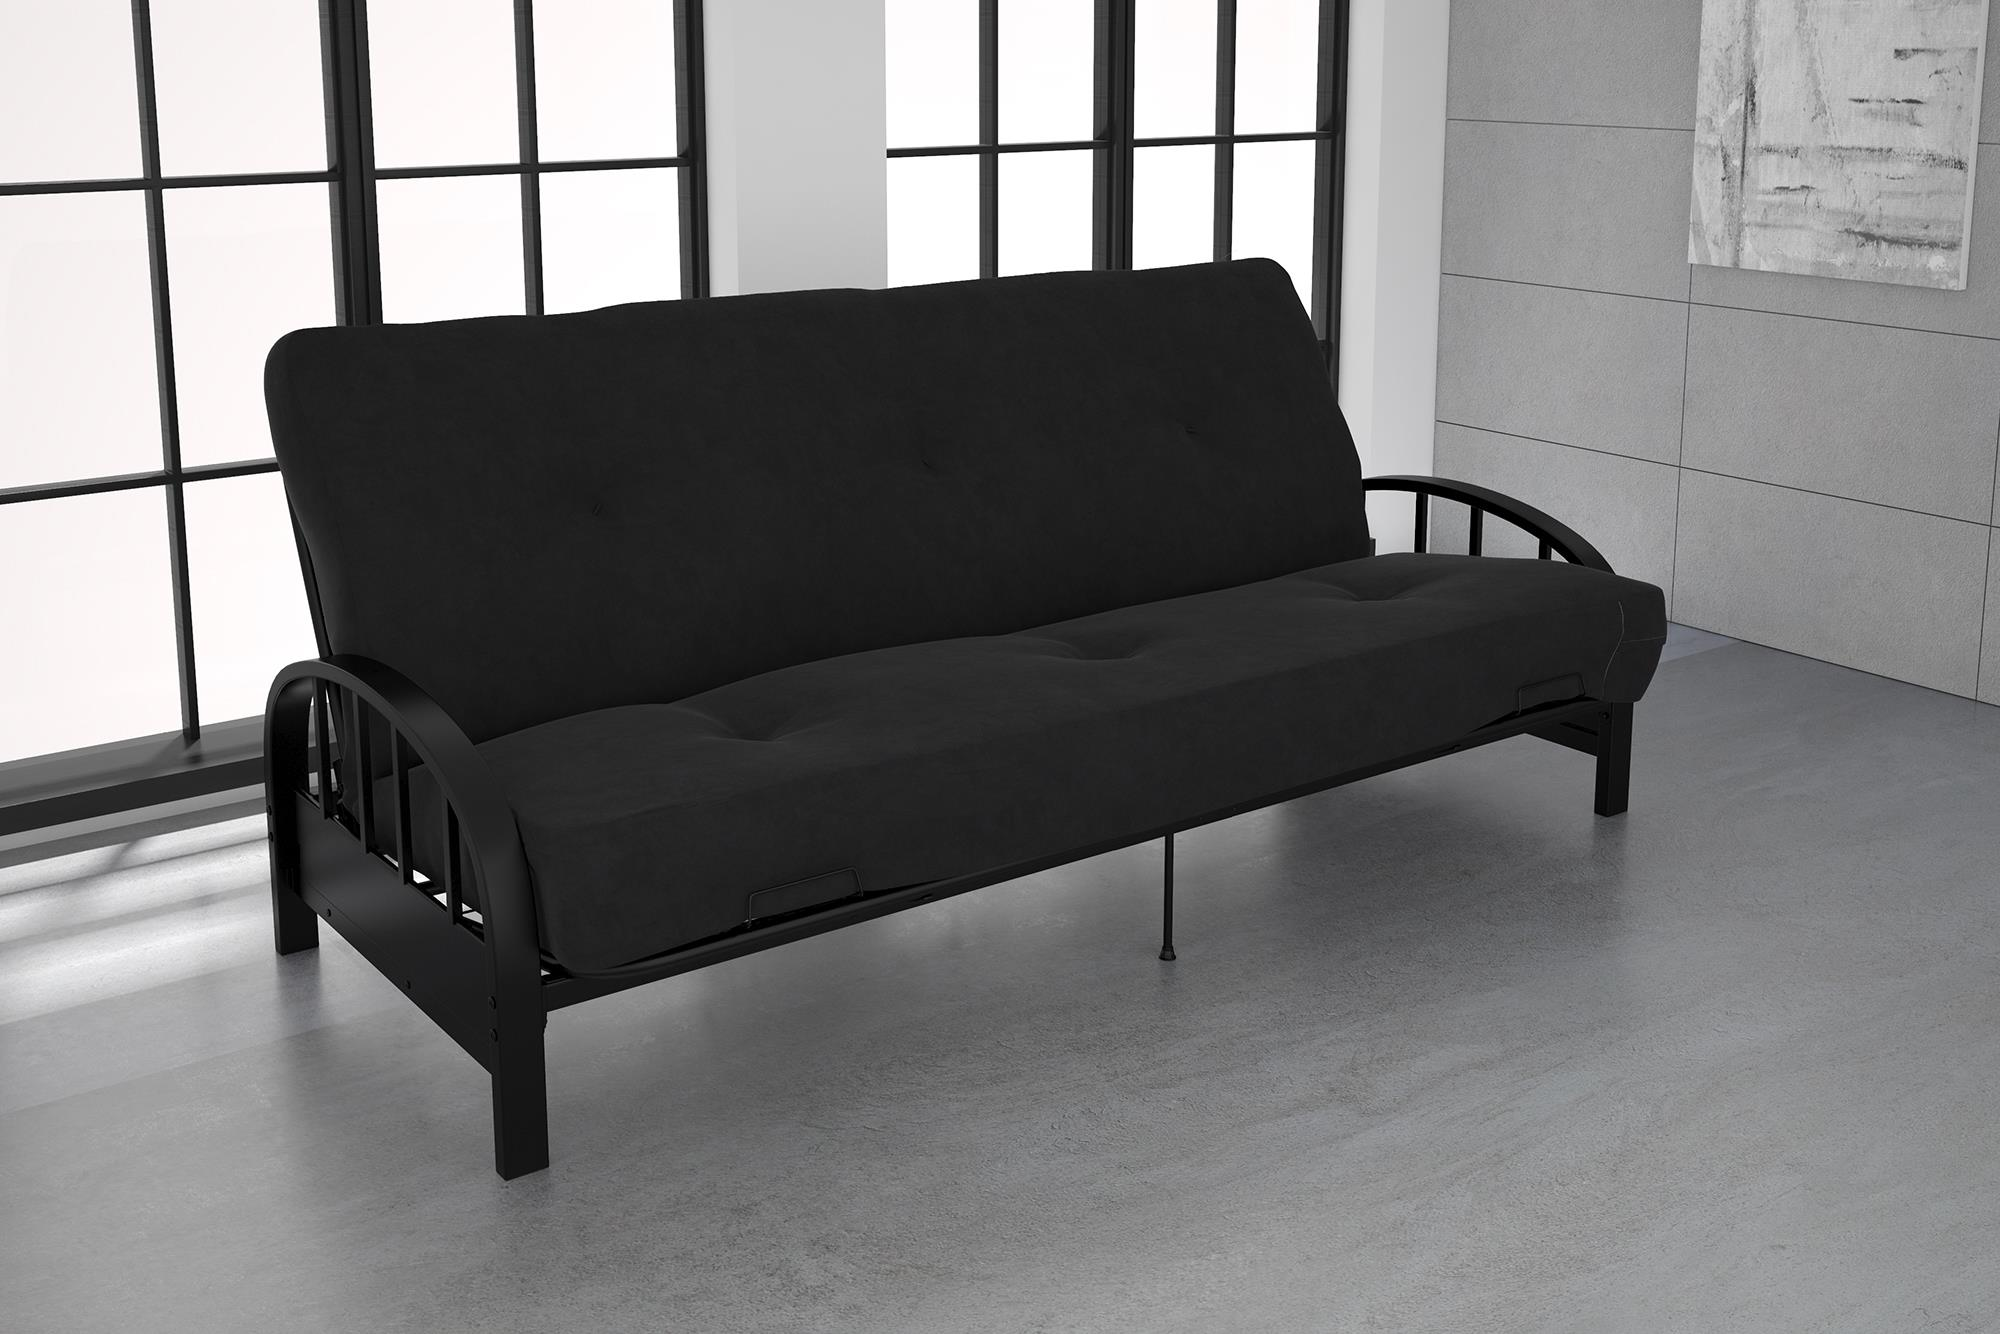 DHP Aiden Black Metal Futon Frame with Coil Full Futon Mattress, Multiple Colors and Sizes by Dorel Home Products